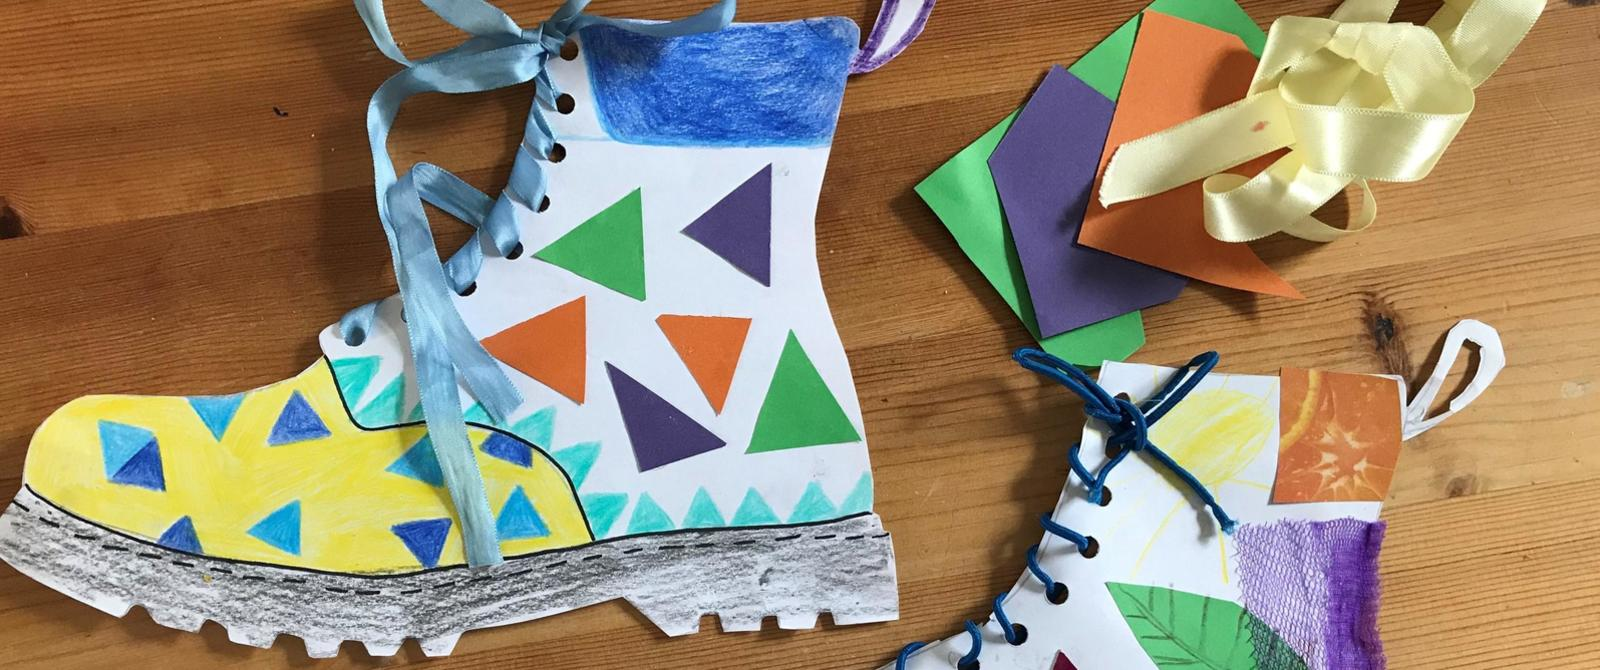 Image: Crafts from a family activity